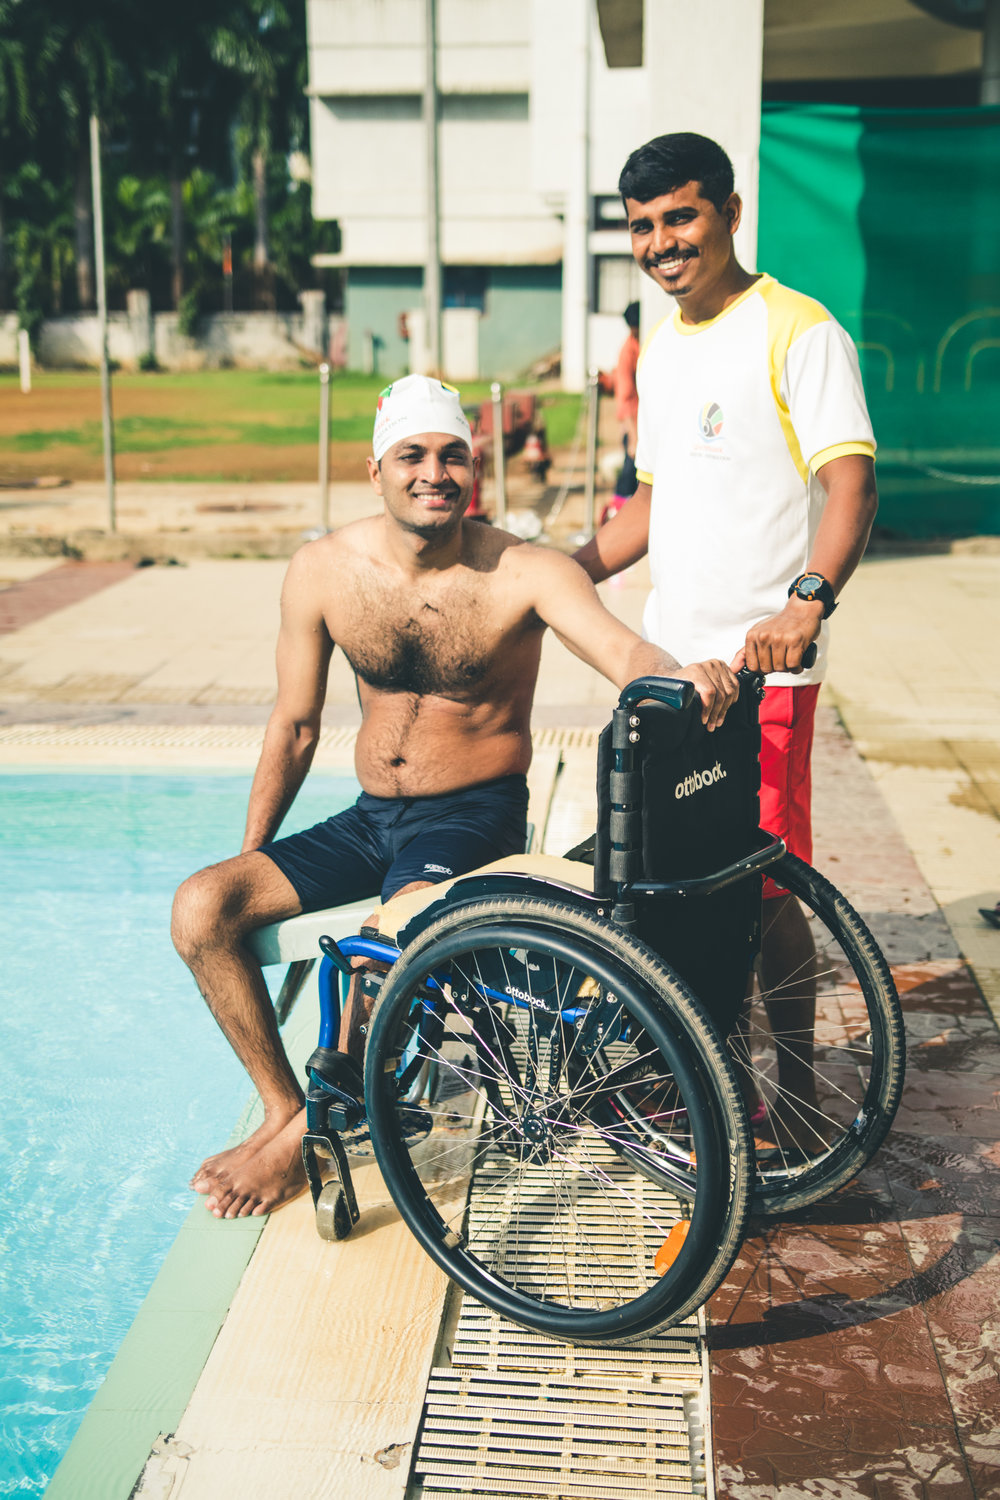 Paraplegic Swimmer